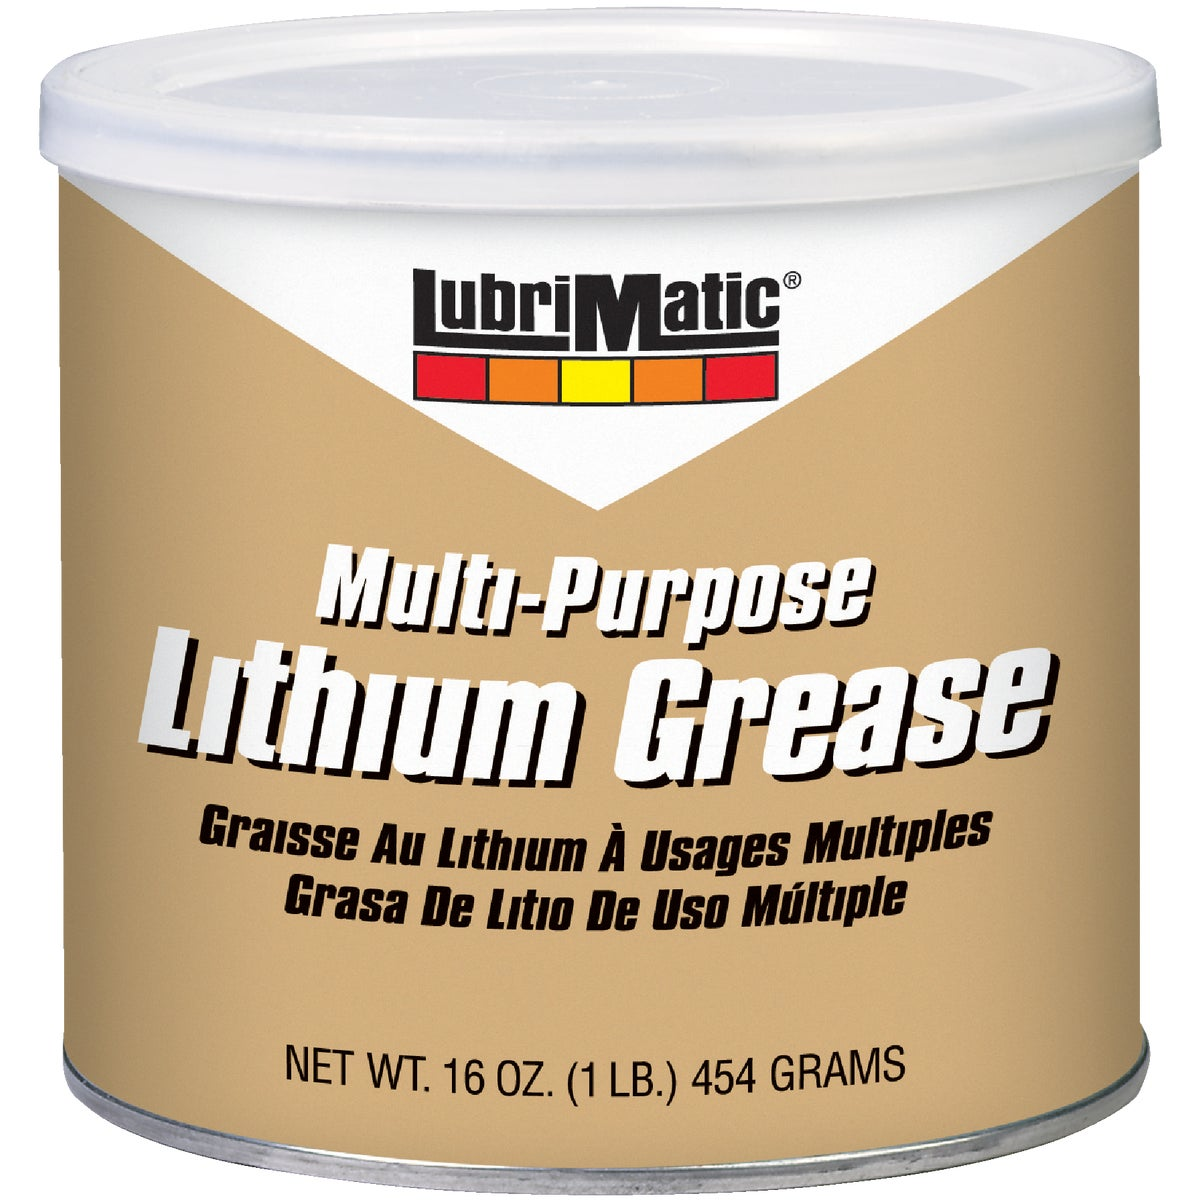 1LB MULIPURPOSE GREASE - 11316 by Plews  Lubrimatic